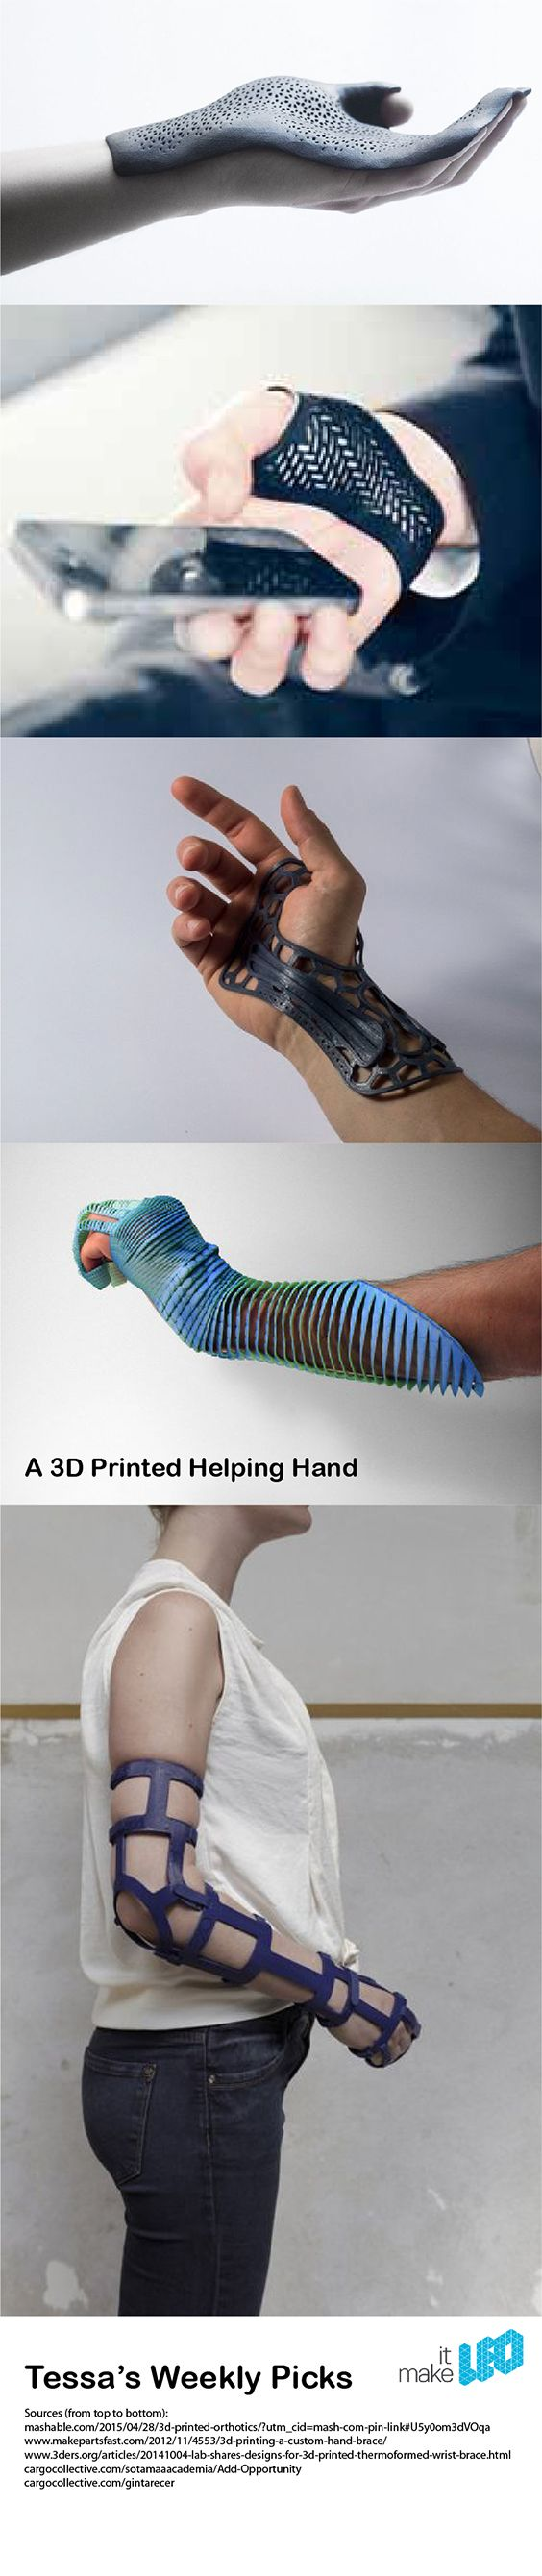 A 3D Printed Helping Hand - Tessa's Weekly Picks - Make it LEO